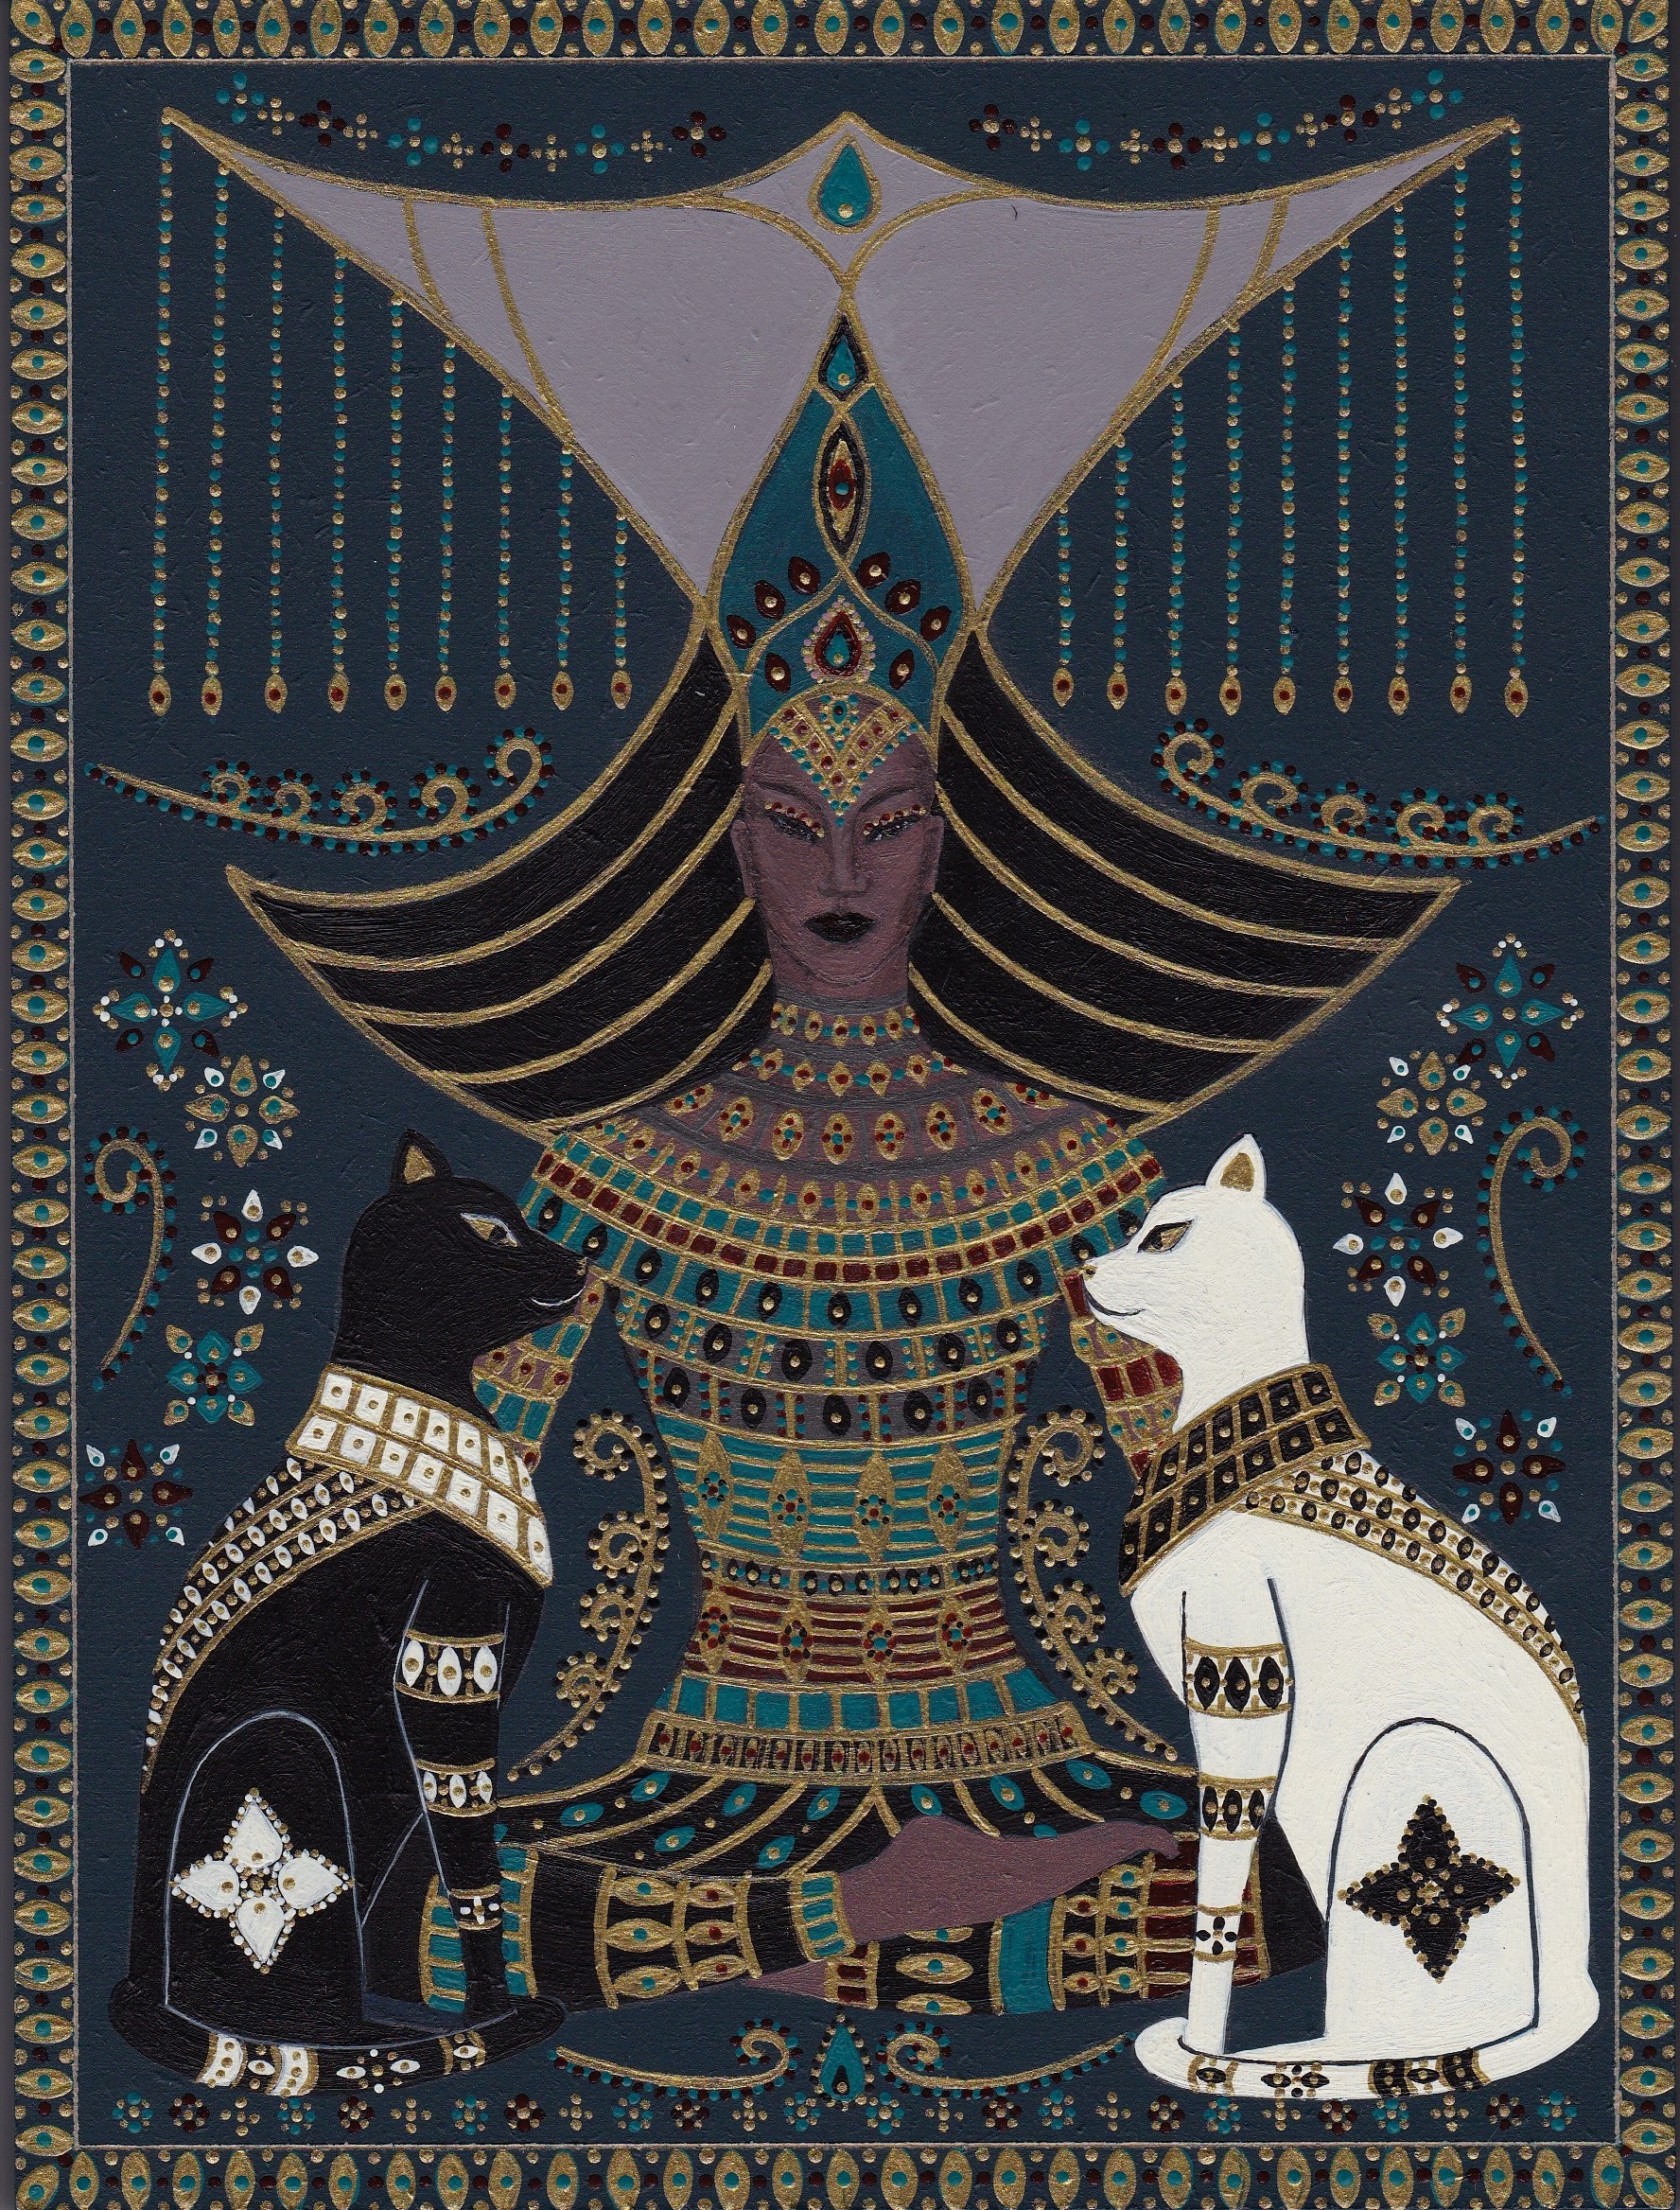 Seated Queen with cats 1